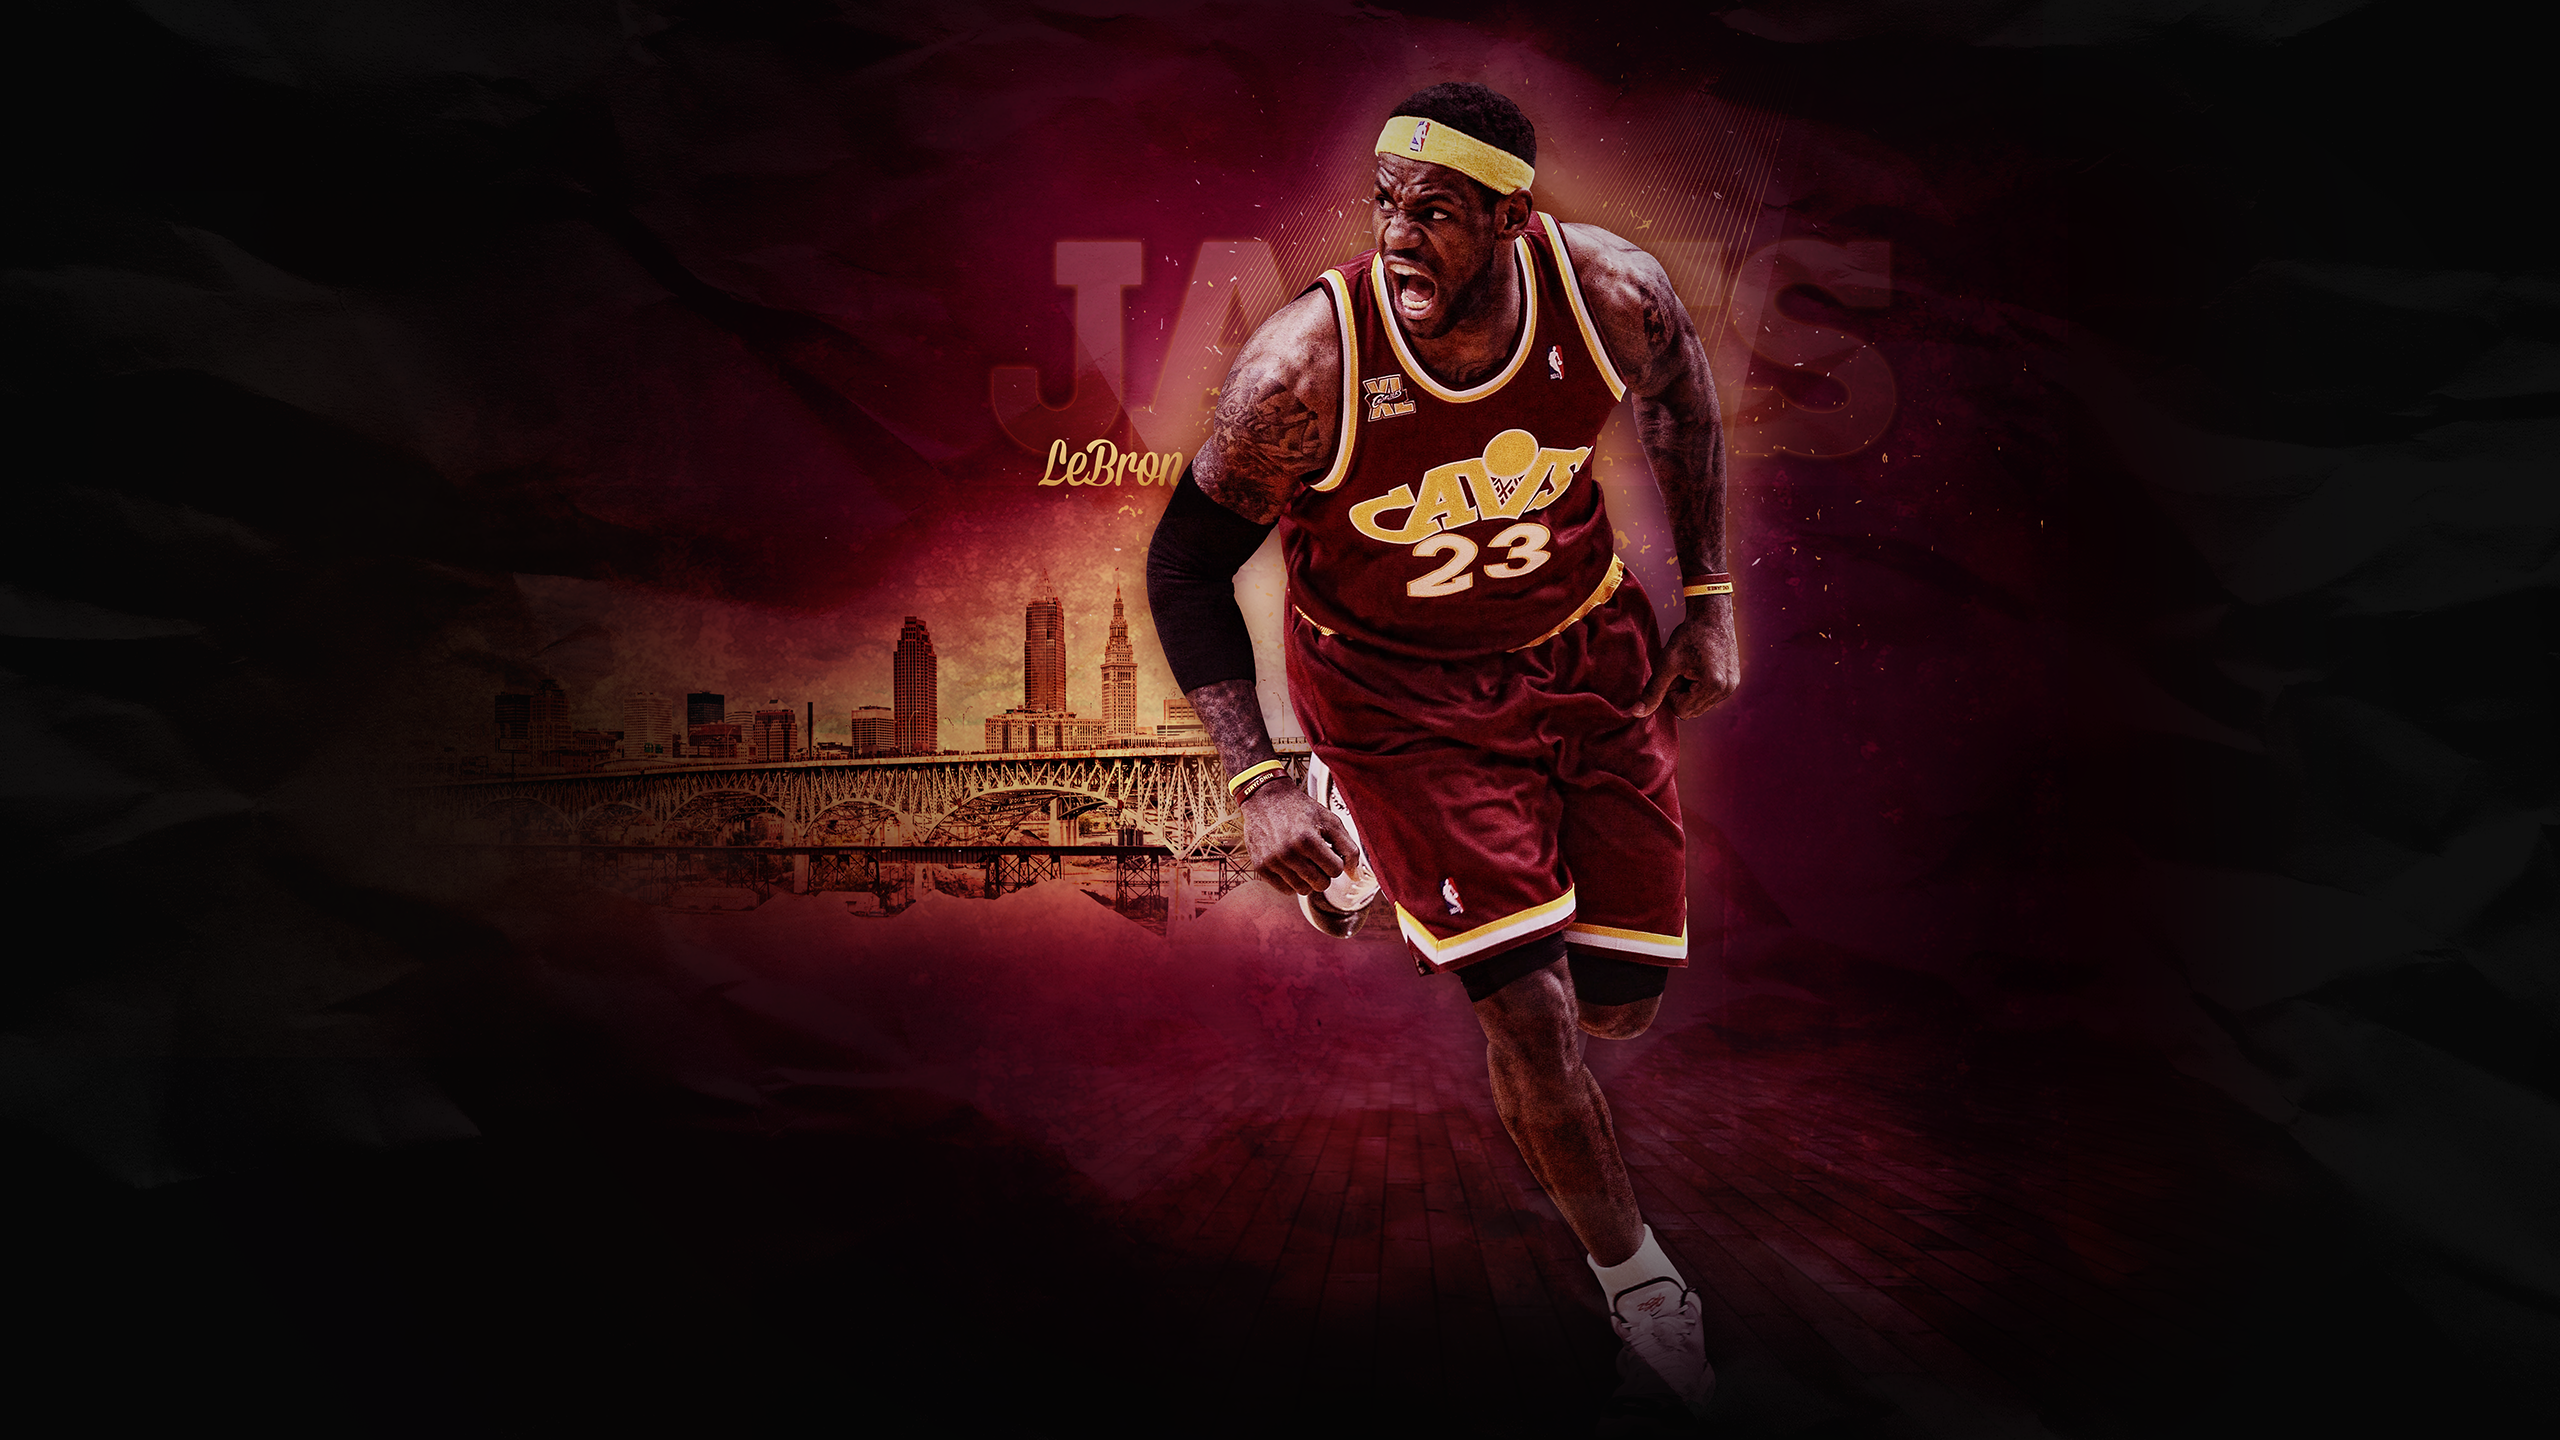 Showing Gallery For LeBron James Cavs Wallpaper 2015 2560x1440